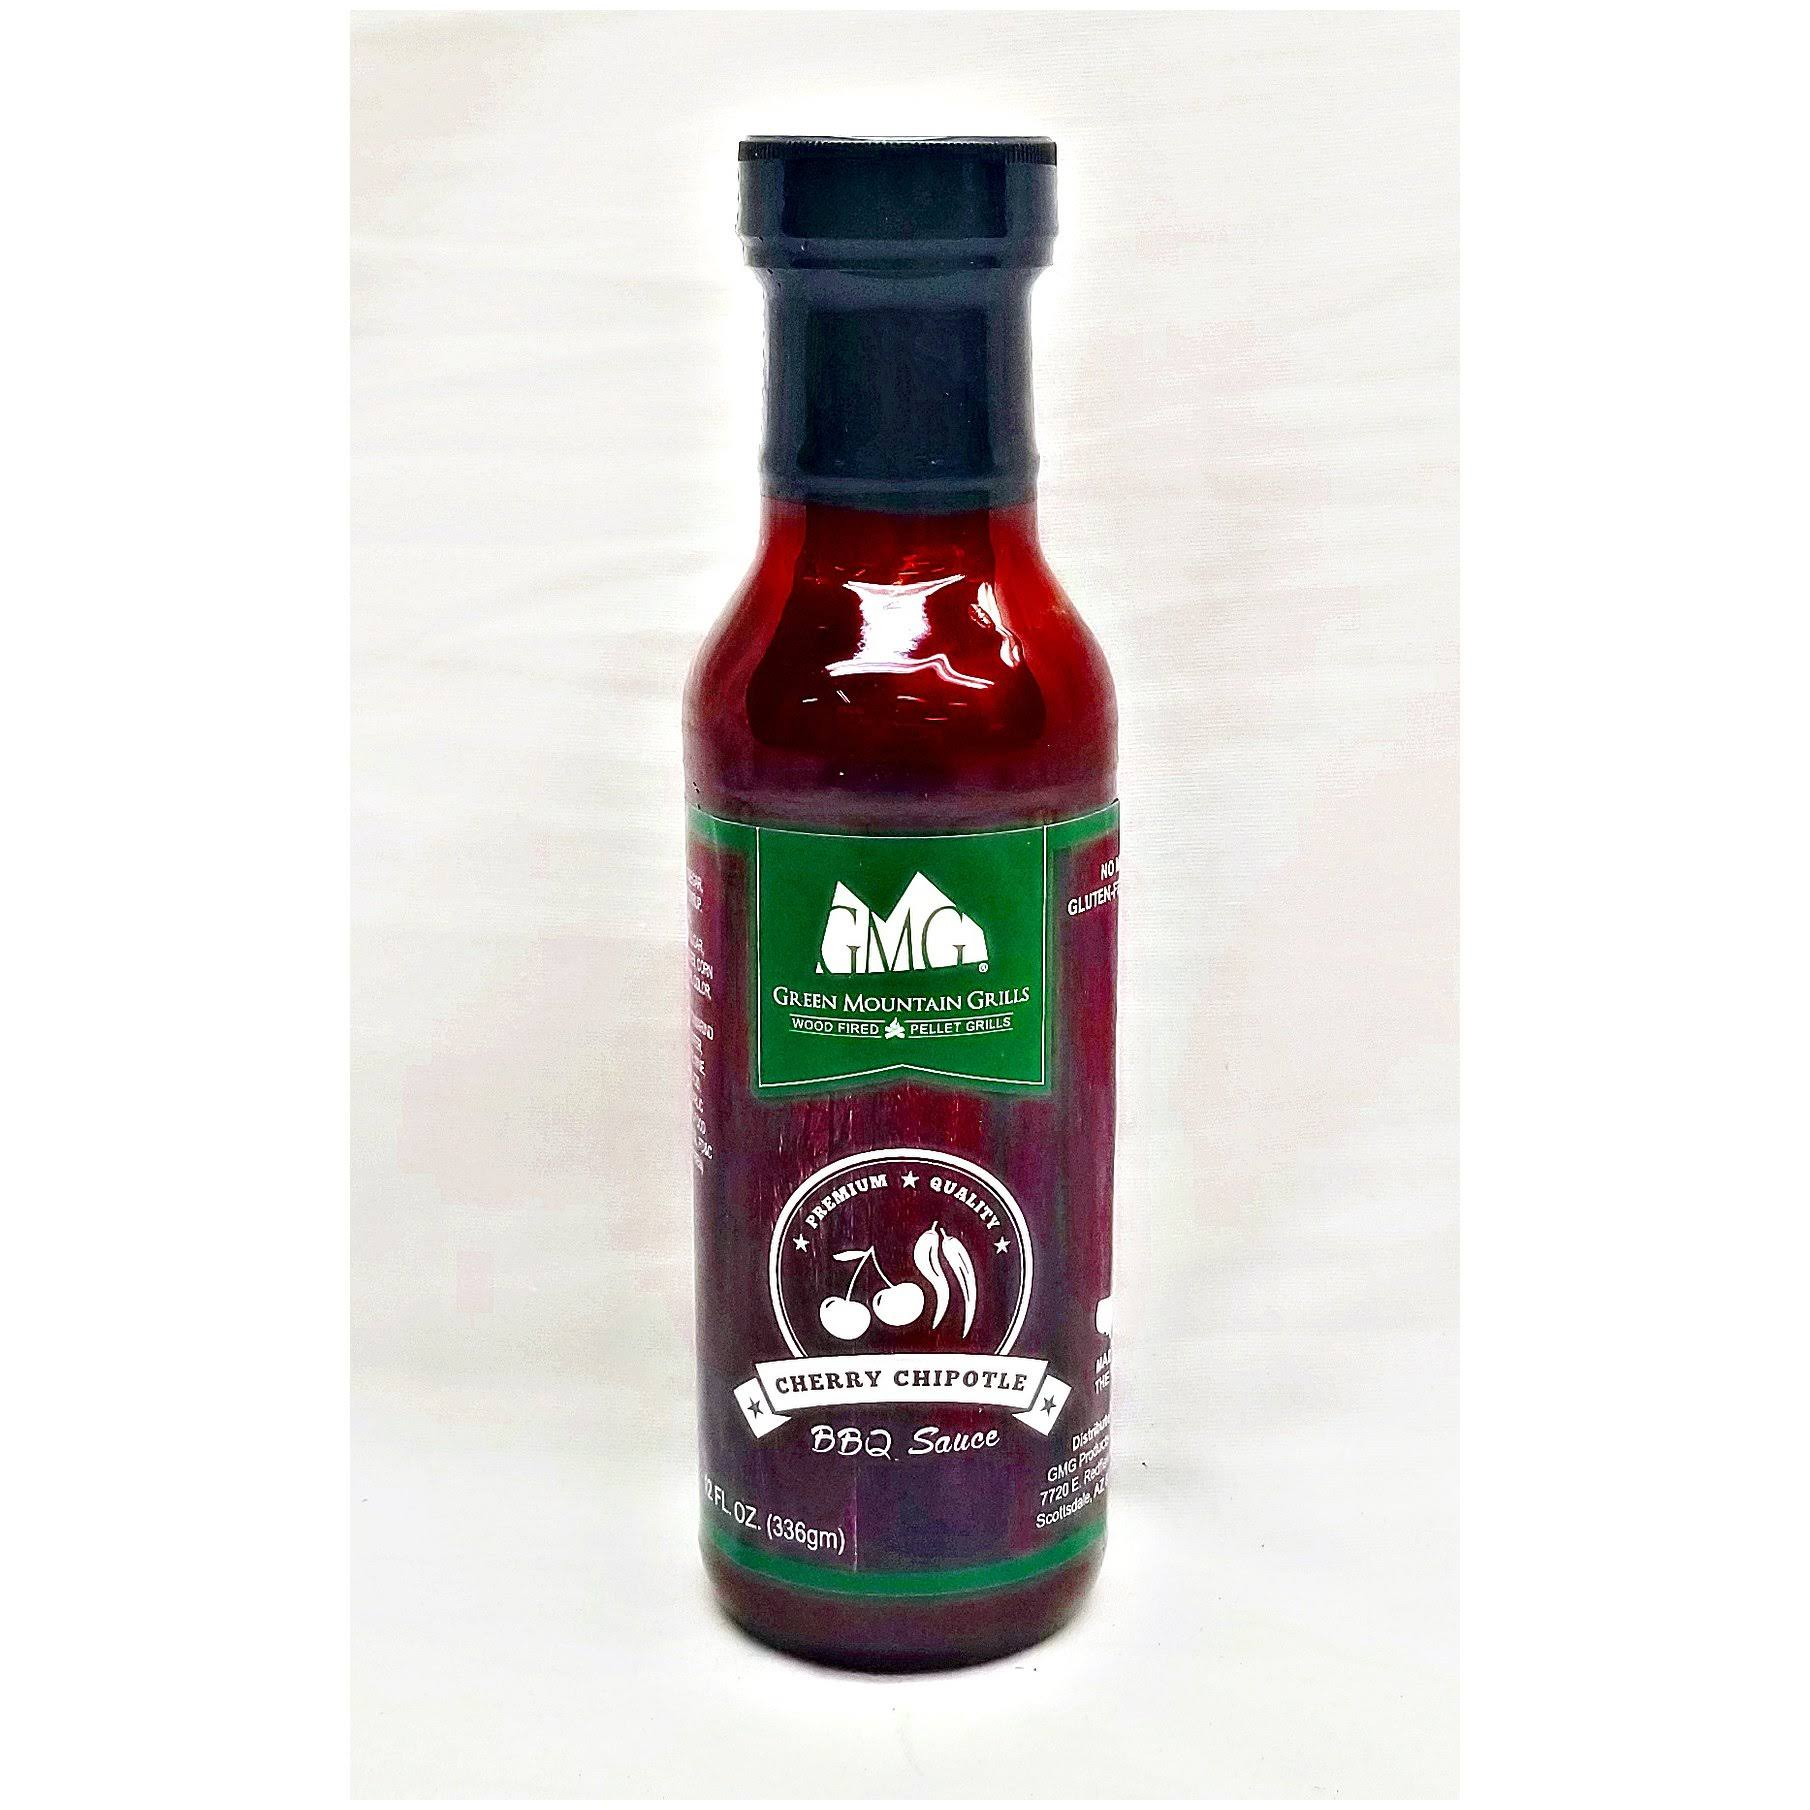 Green Mountain GrillCherry Chipotle Bbq Sauce